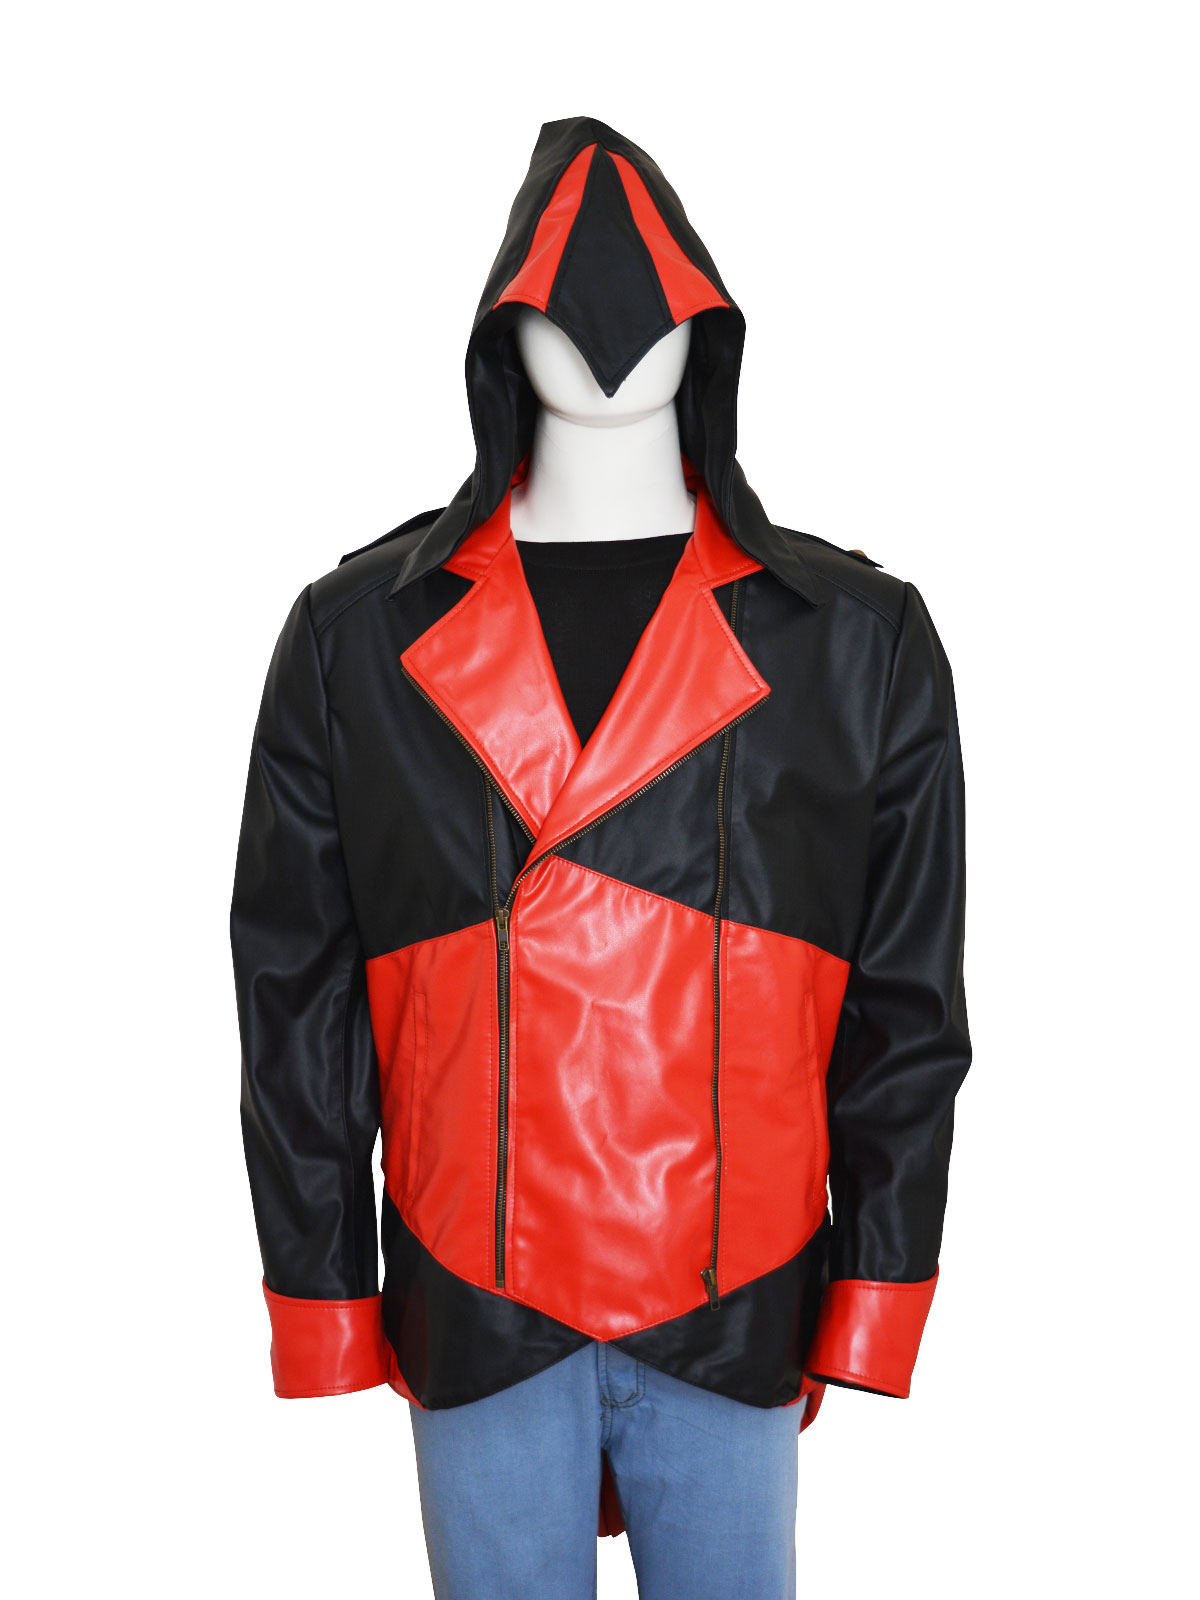 Connor Kenway Assassins Creed 3 Coat Jacket